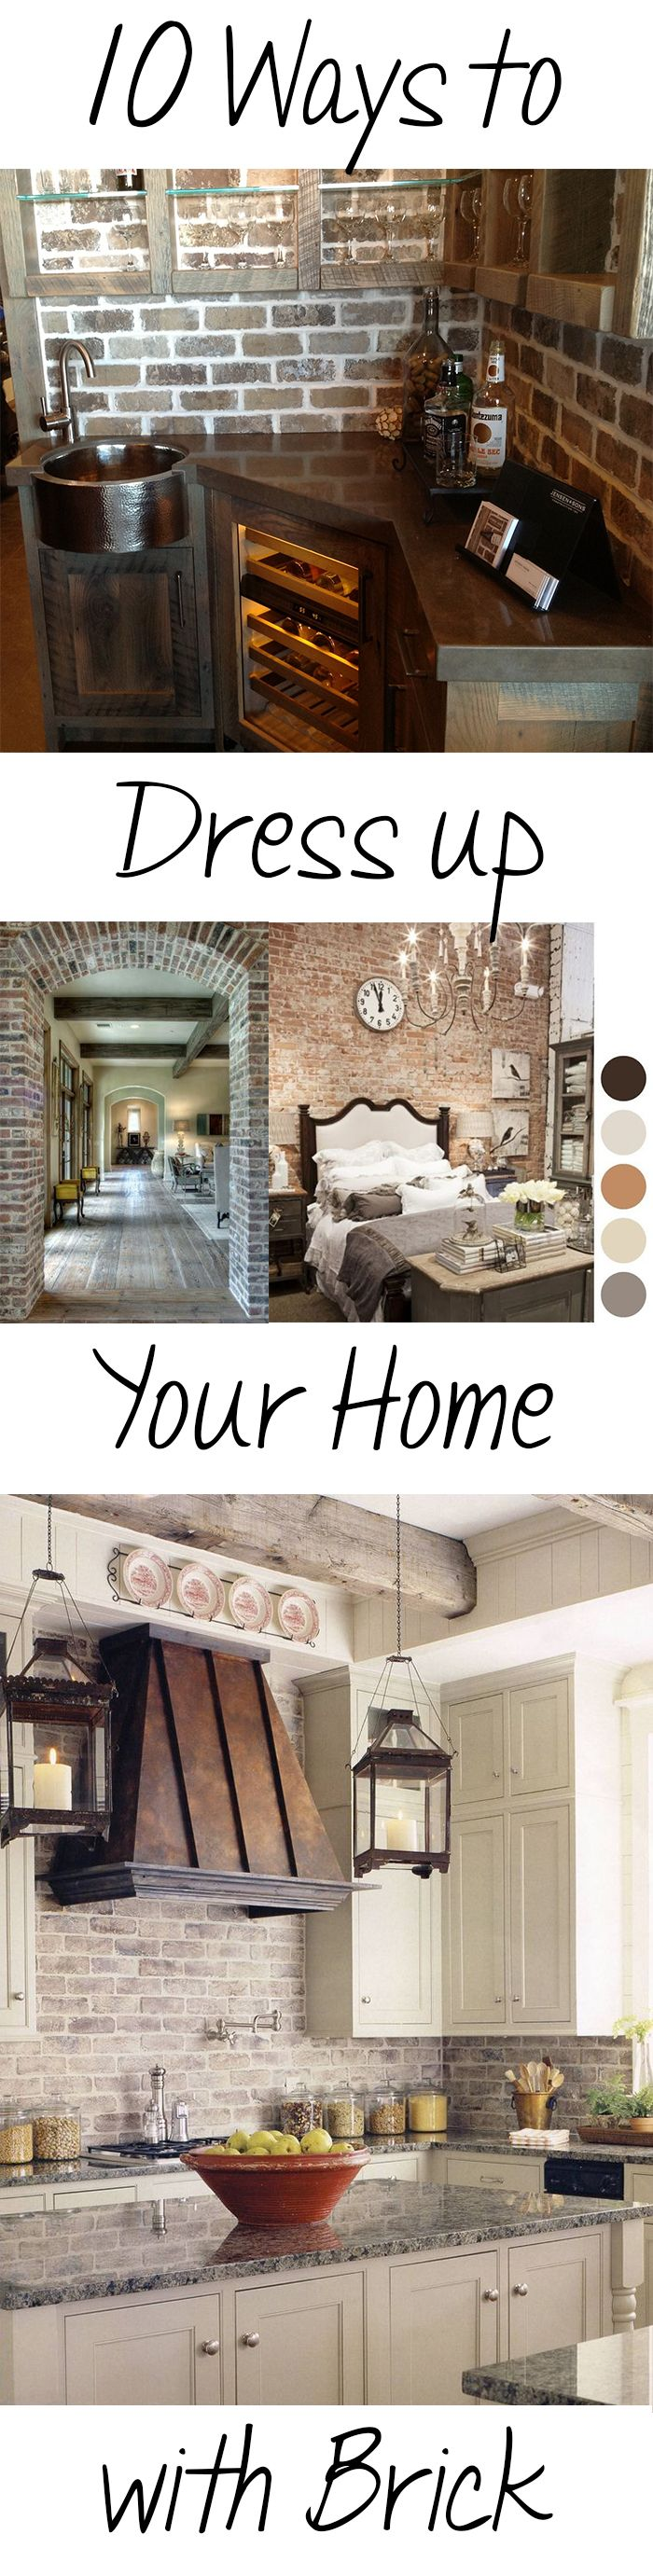 WARM AND WELCOMING TRADITIONAL TIMELESS To Me Brick Is One